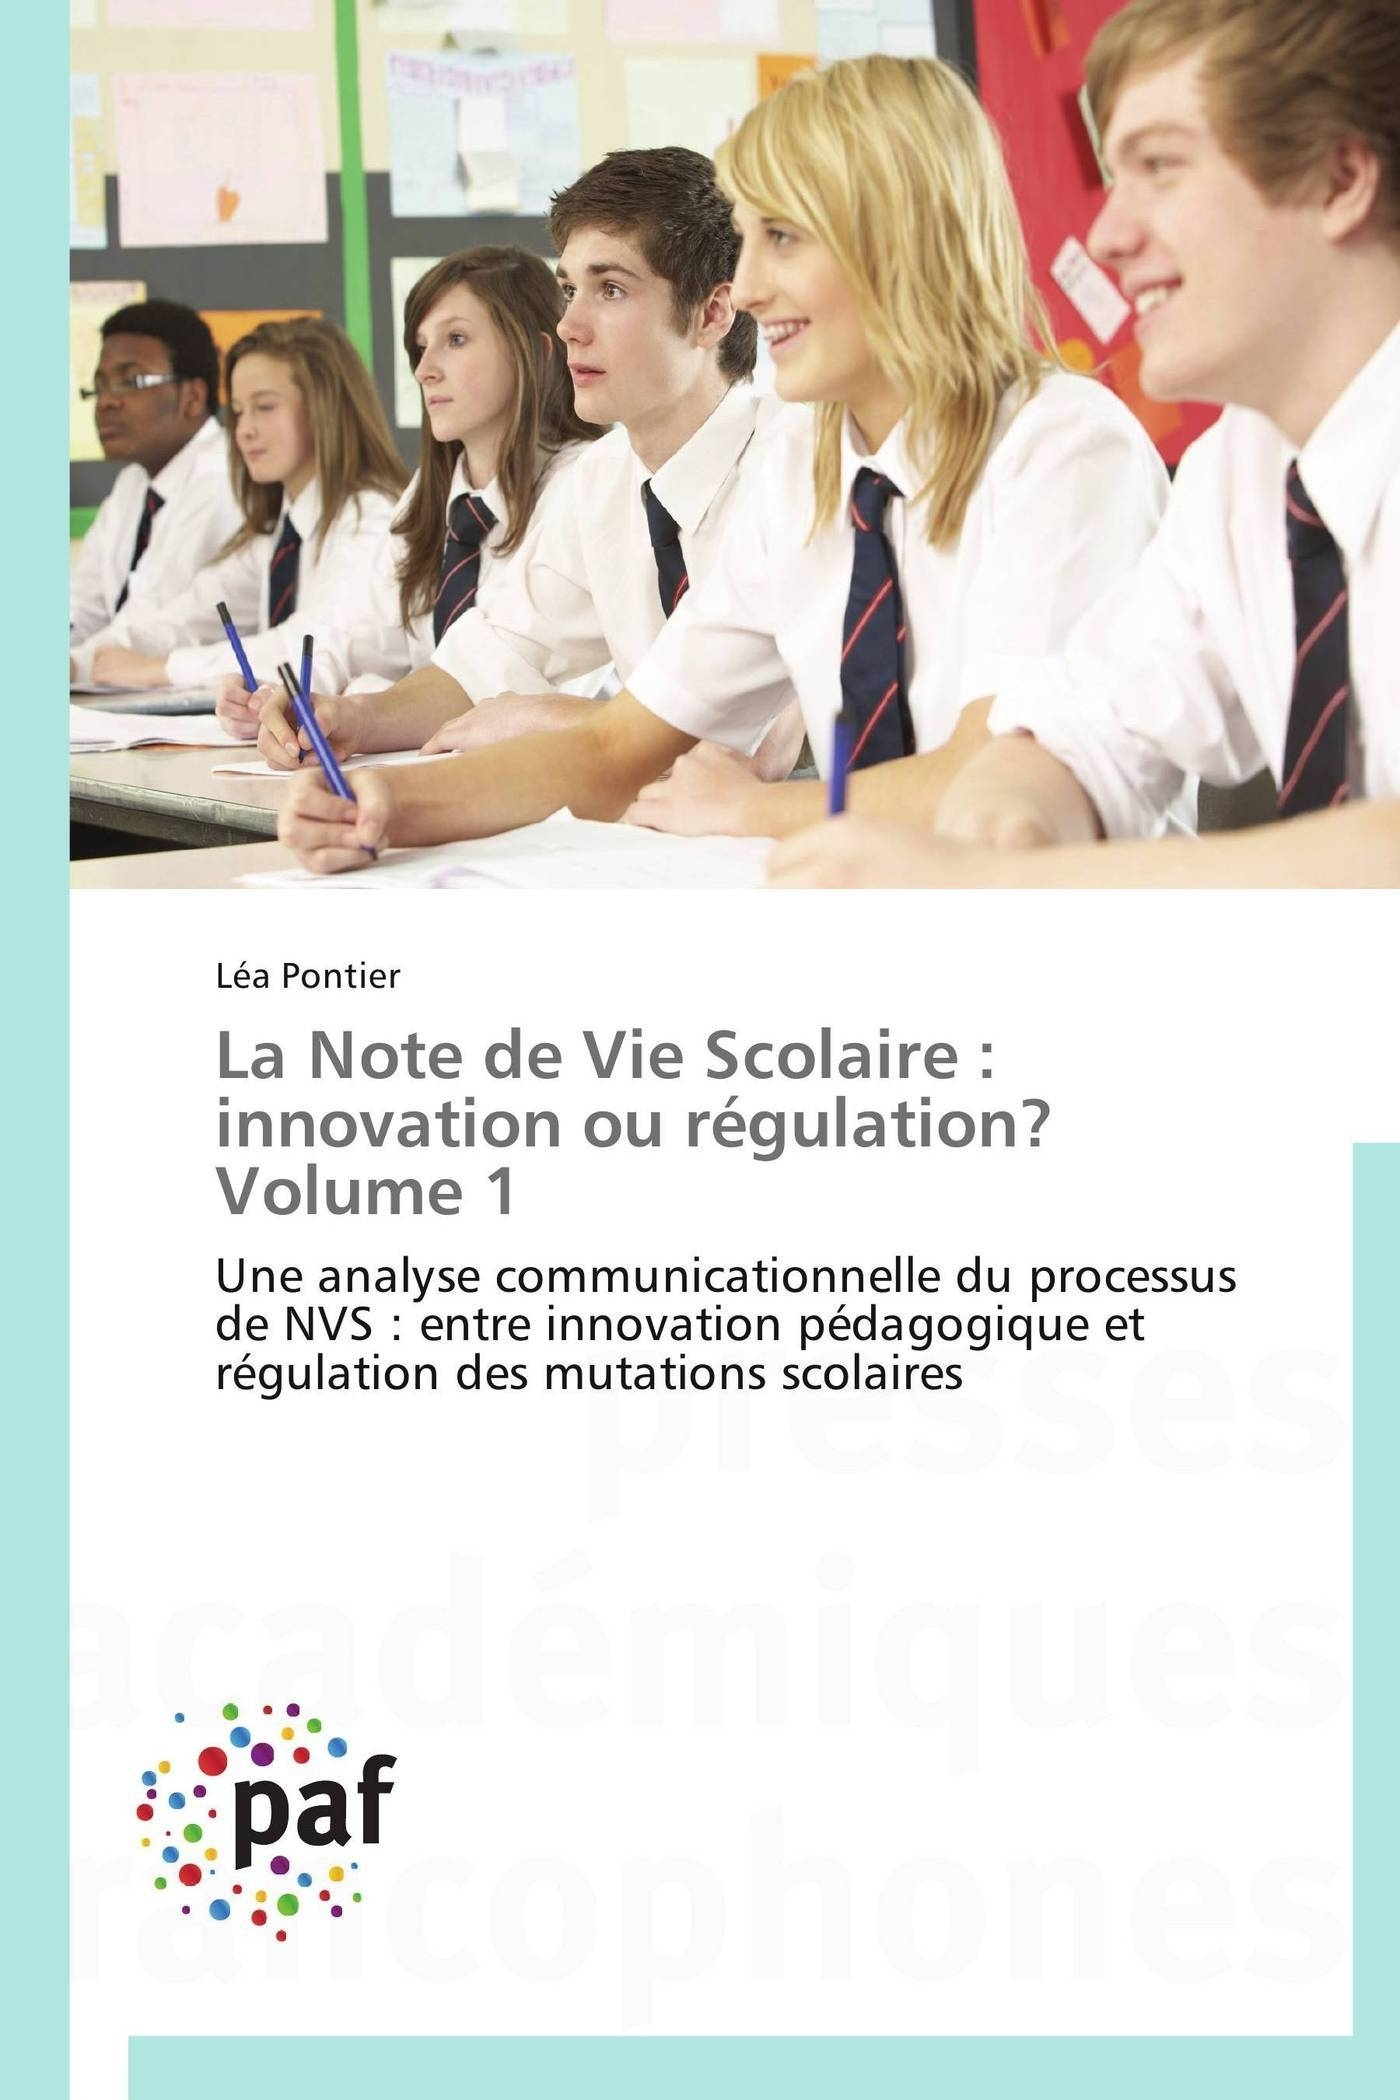 LA NOTE DE VIE SCOLAIRE : INNOVATION OU REGULATION? VOLUME 1